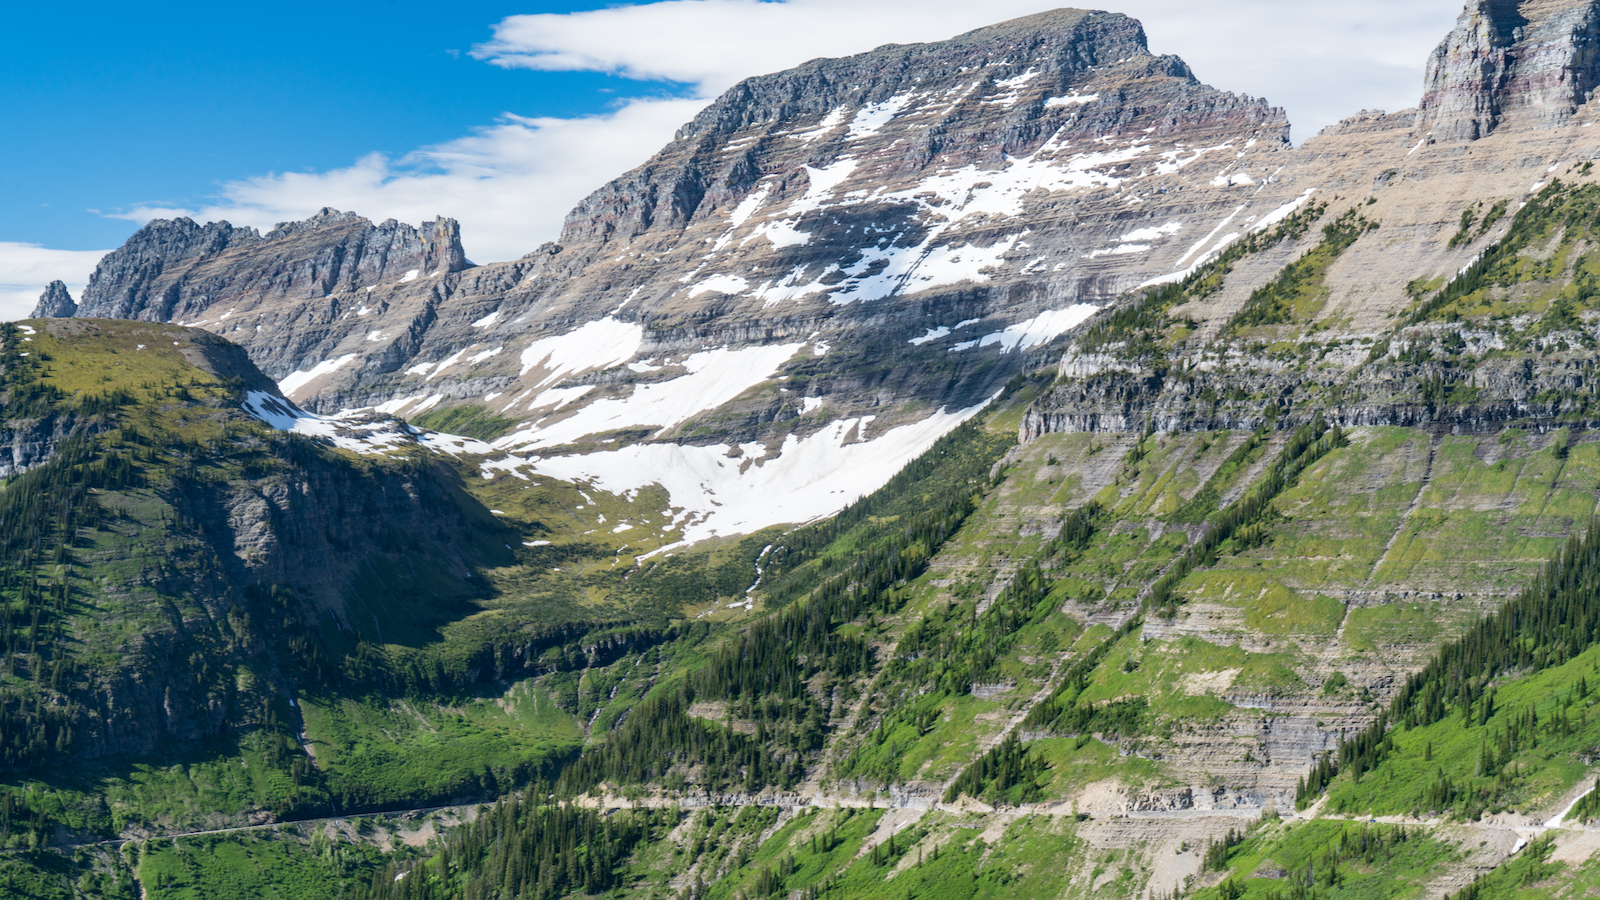 GyPSy Guide Audio Driving Tour App for Glacier National Park